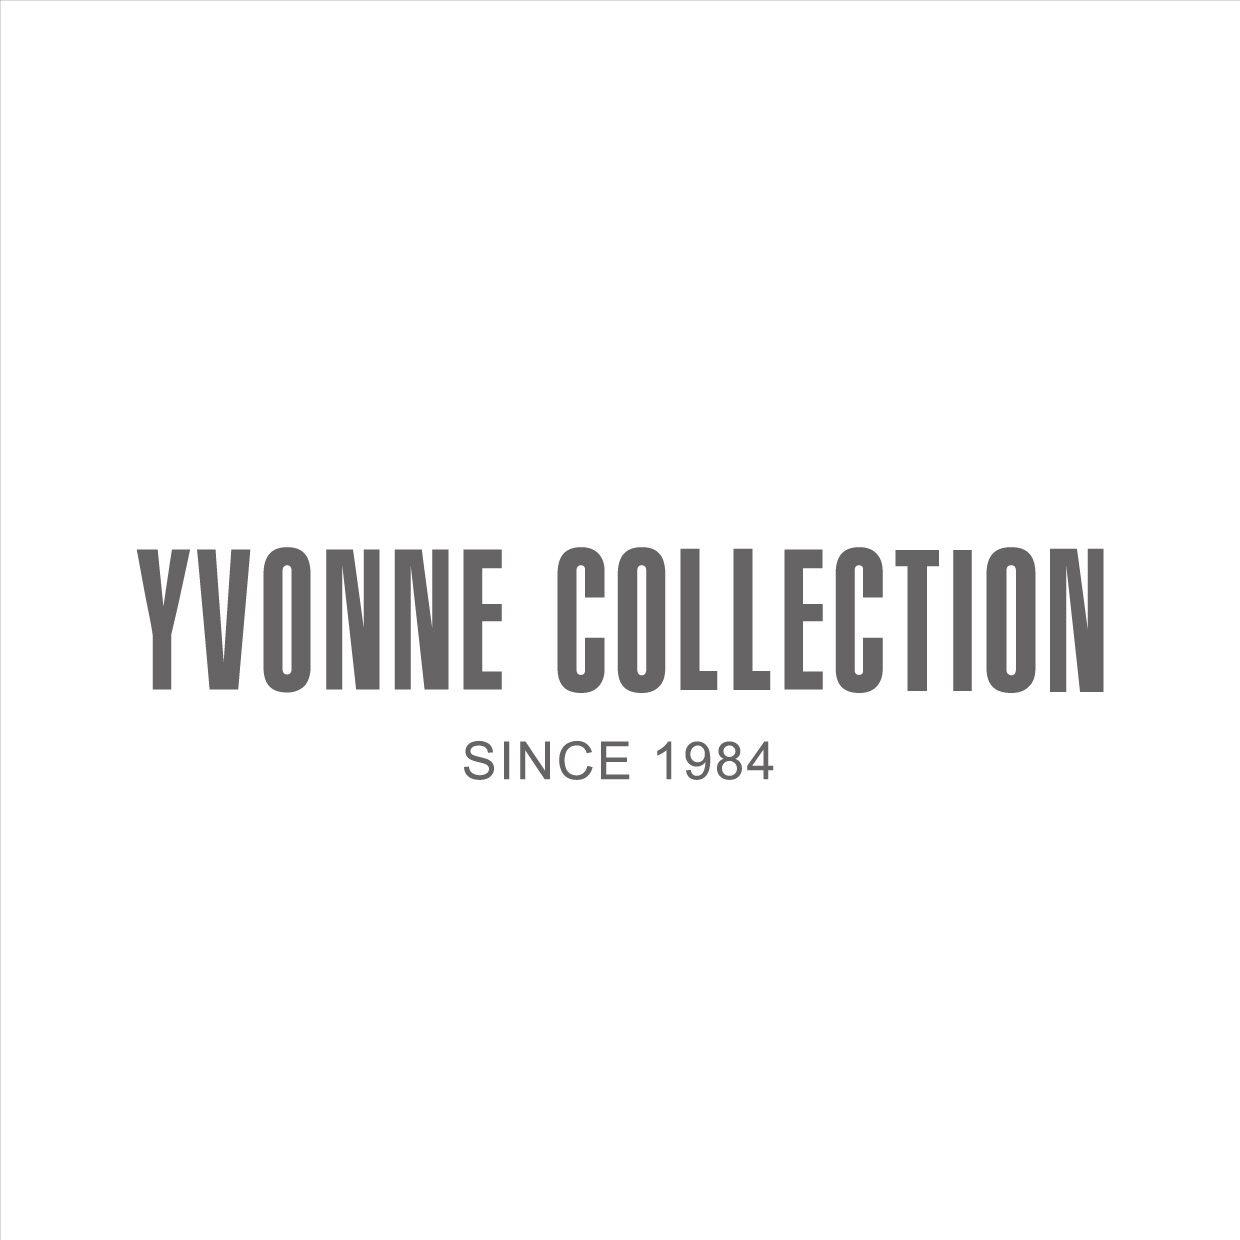 YVONNE COLLECTION